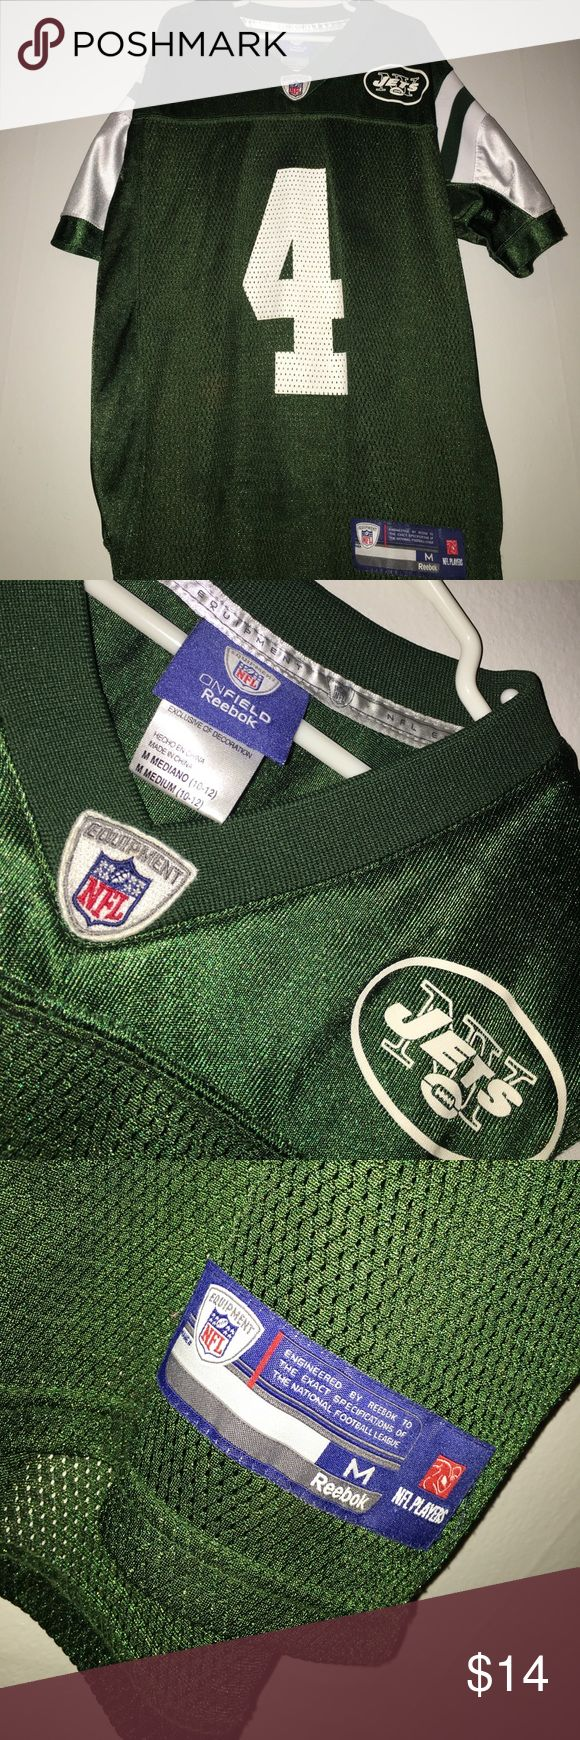 Favre #4 Jersey - NY Jets - Reebok Boys size Medium 10-12. New York Jets Favre jersey #4. On Field Reebok/NFL Players/NFL Equipment. In good condition! NFL Players Shirts & Tops